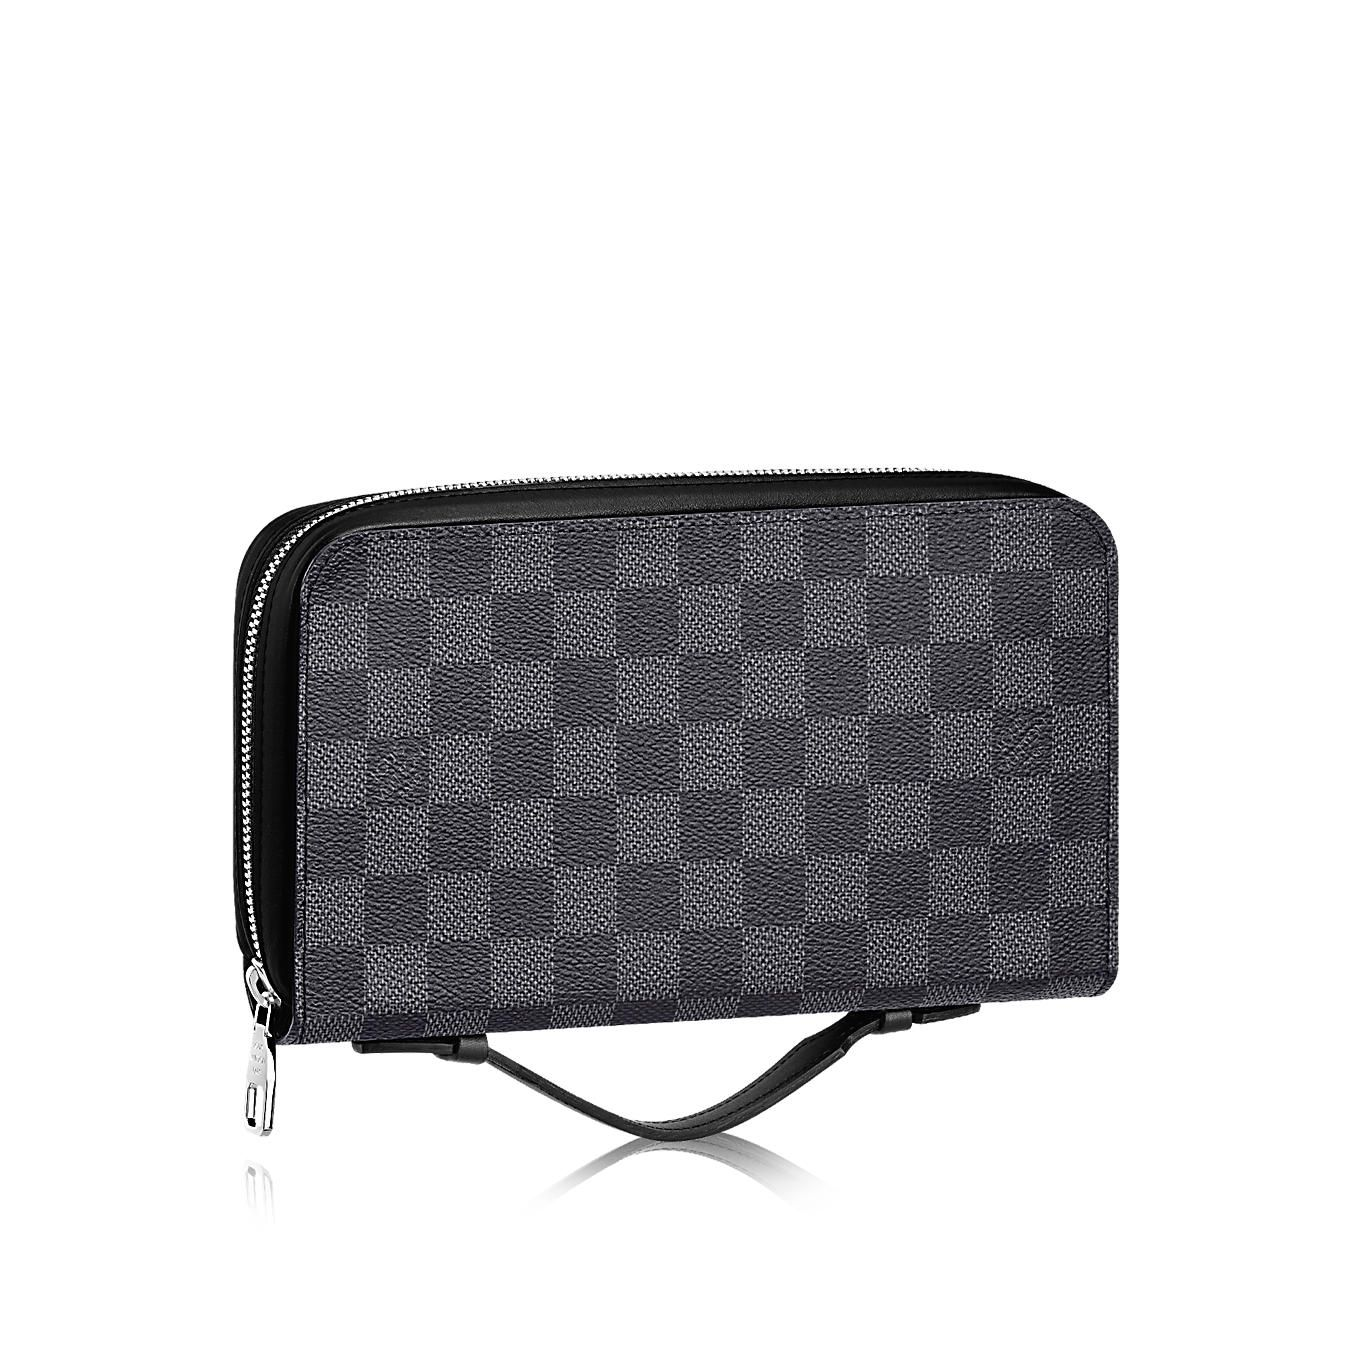 Damier graphite canvas small leather goods wallets zippy